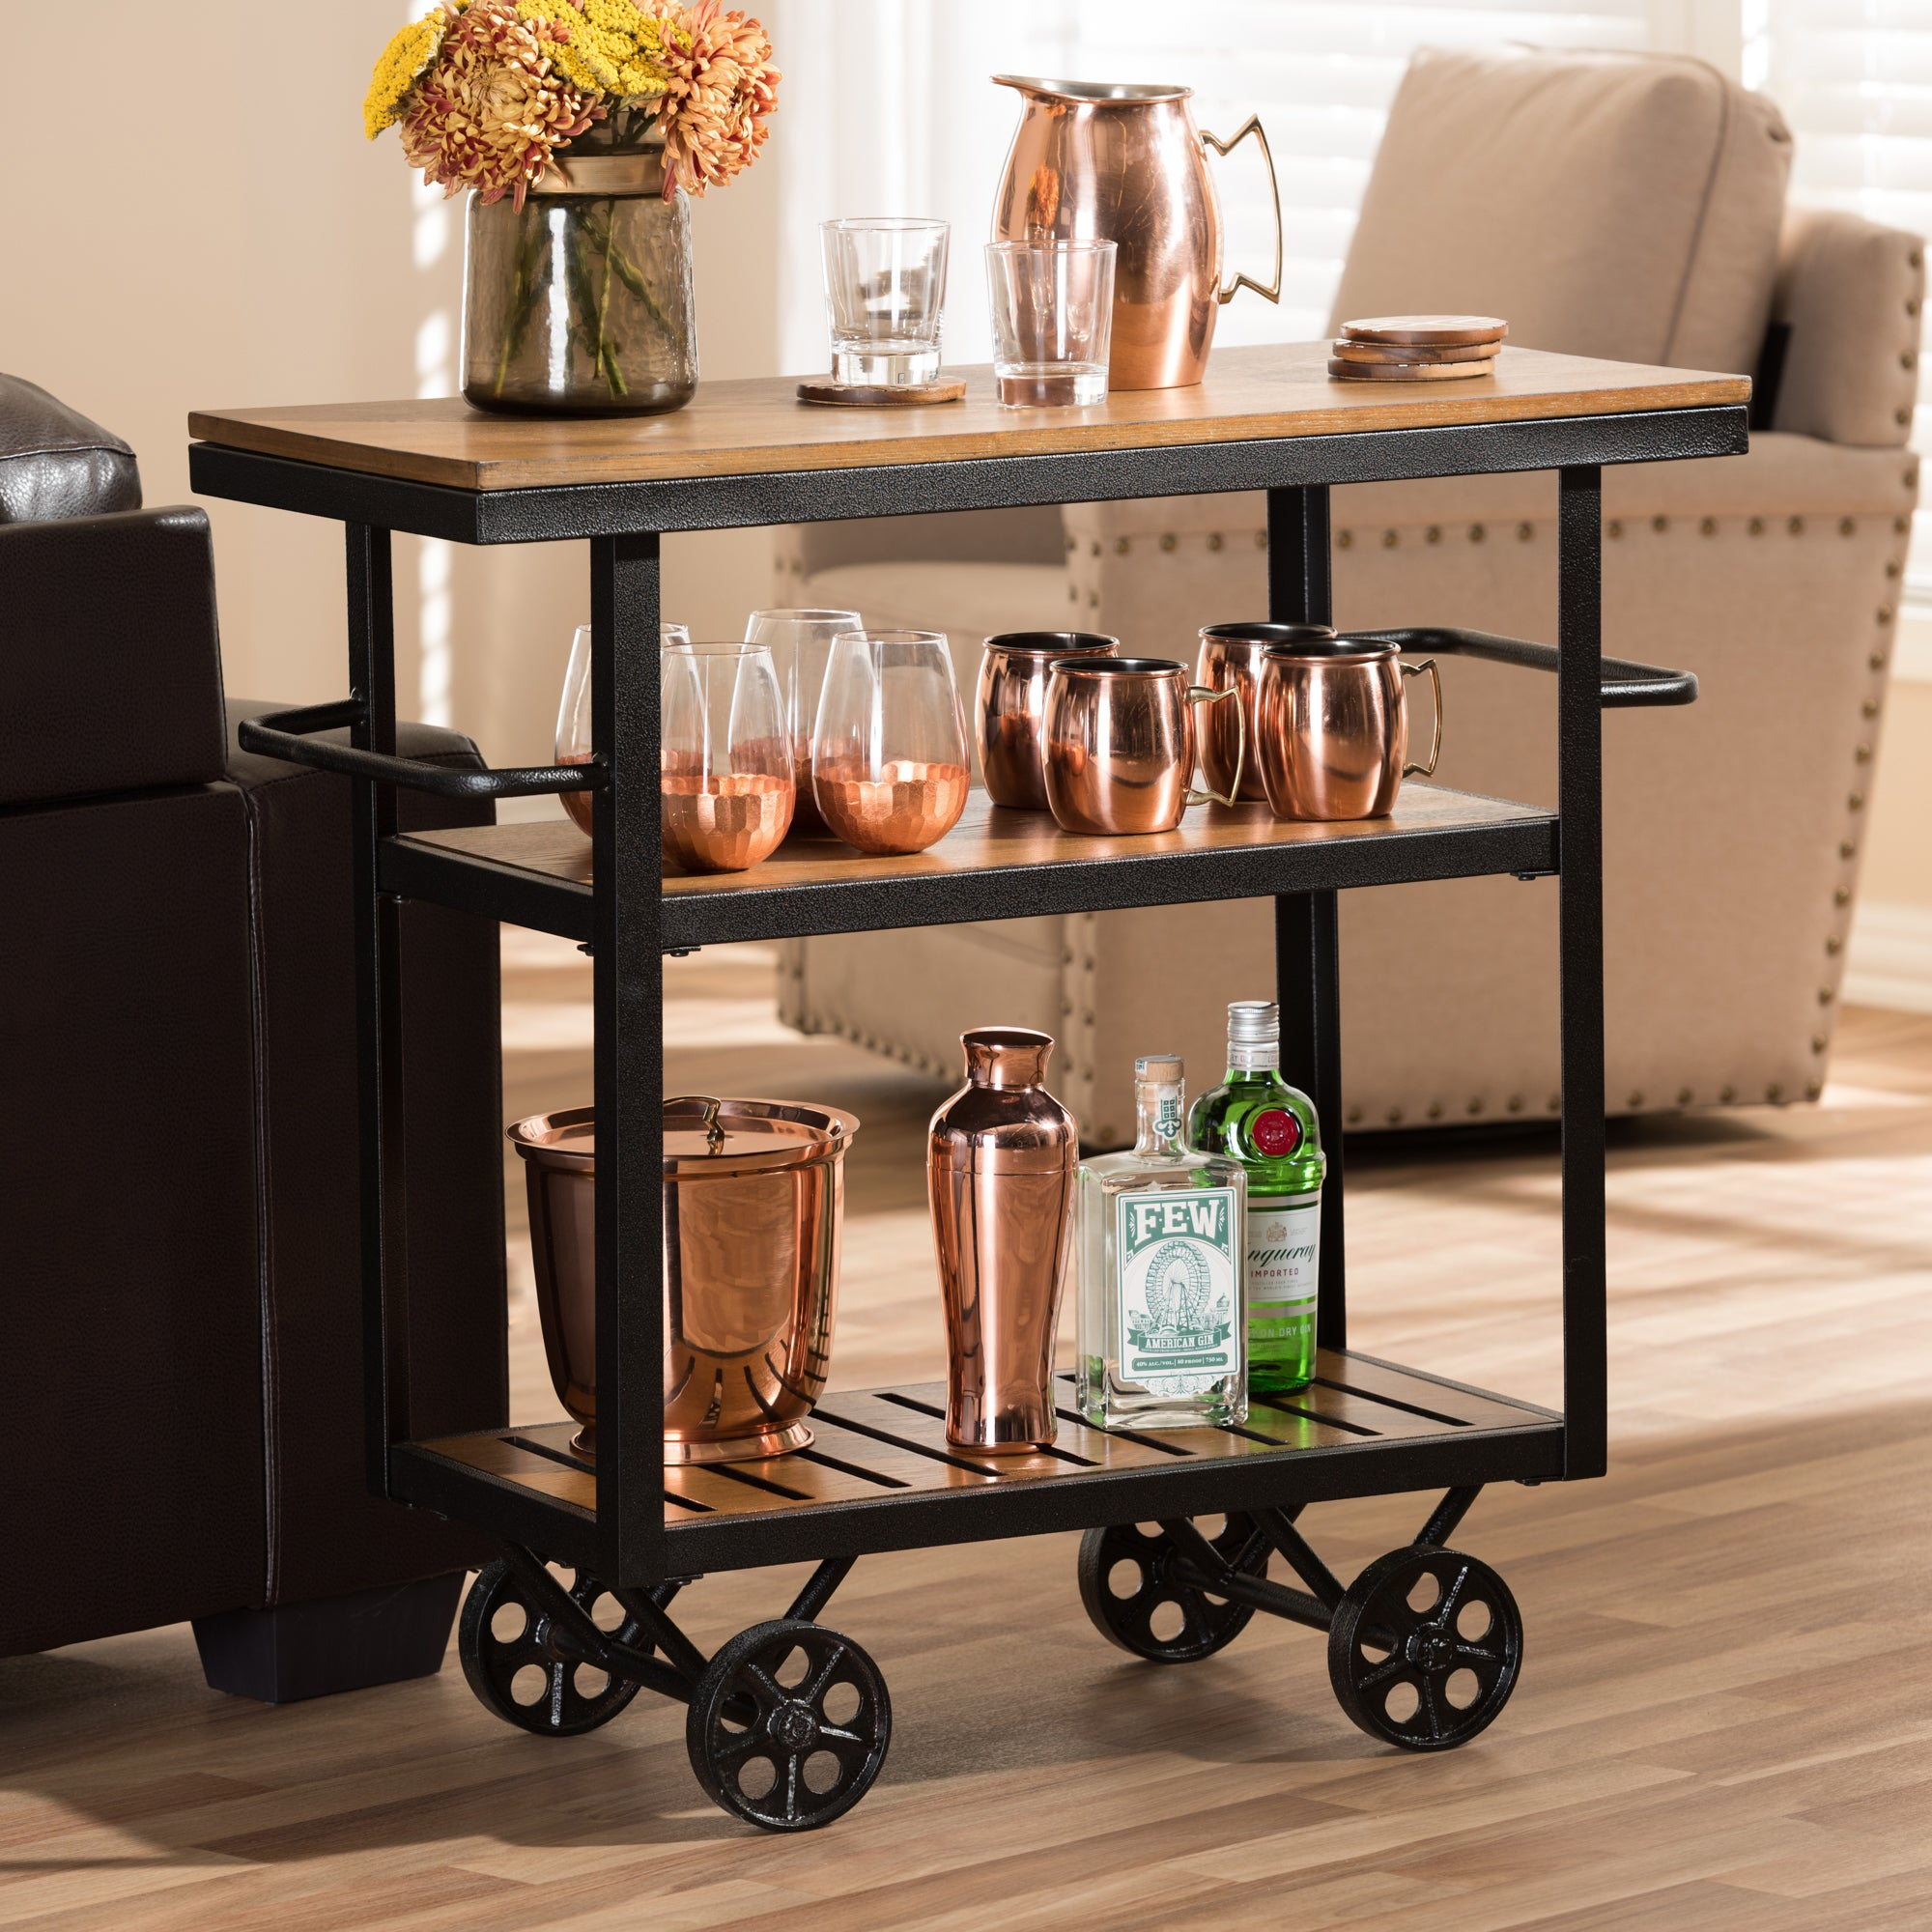 Baxton Studio Brown Industrial Kitchen Cart At Lowes Com: Shop Industrial Black&Brown Cart By Baxton Studio